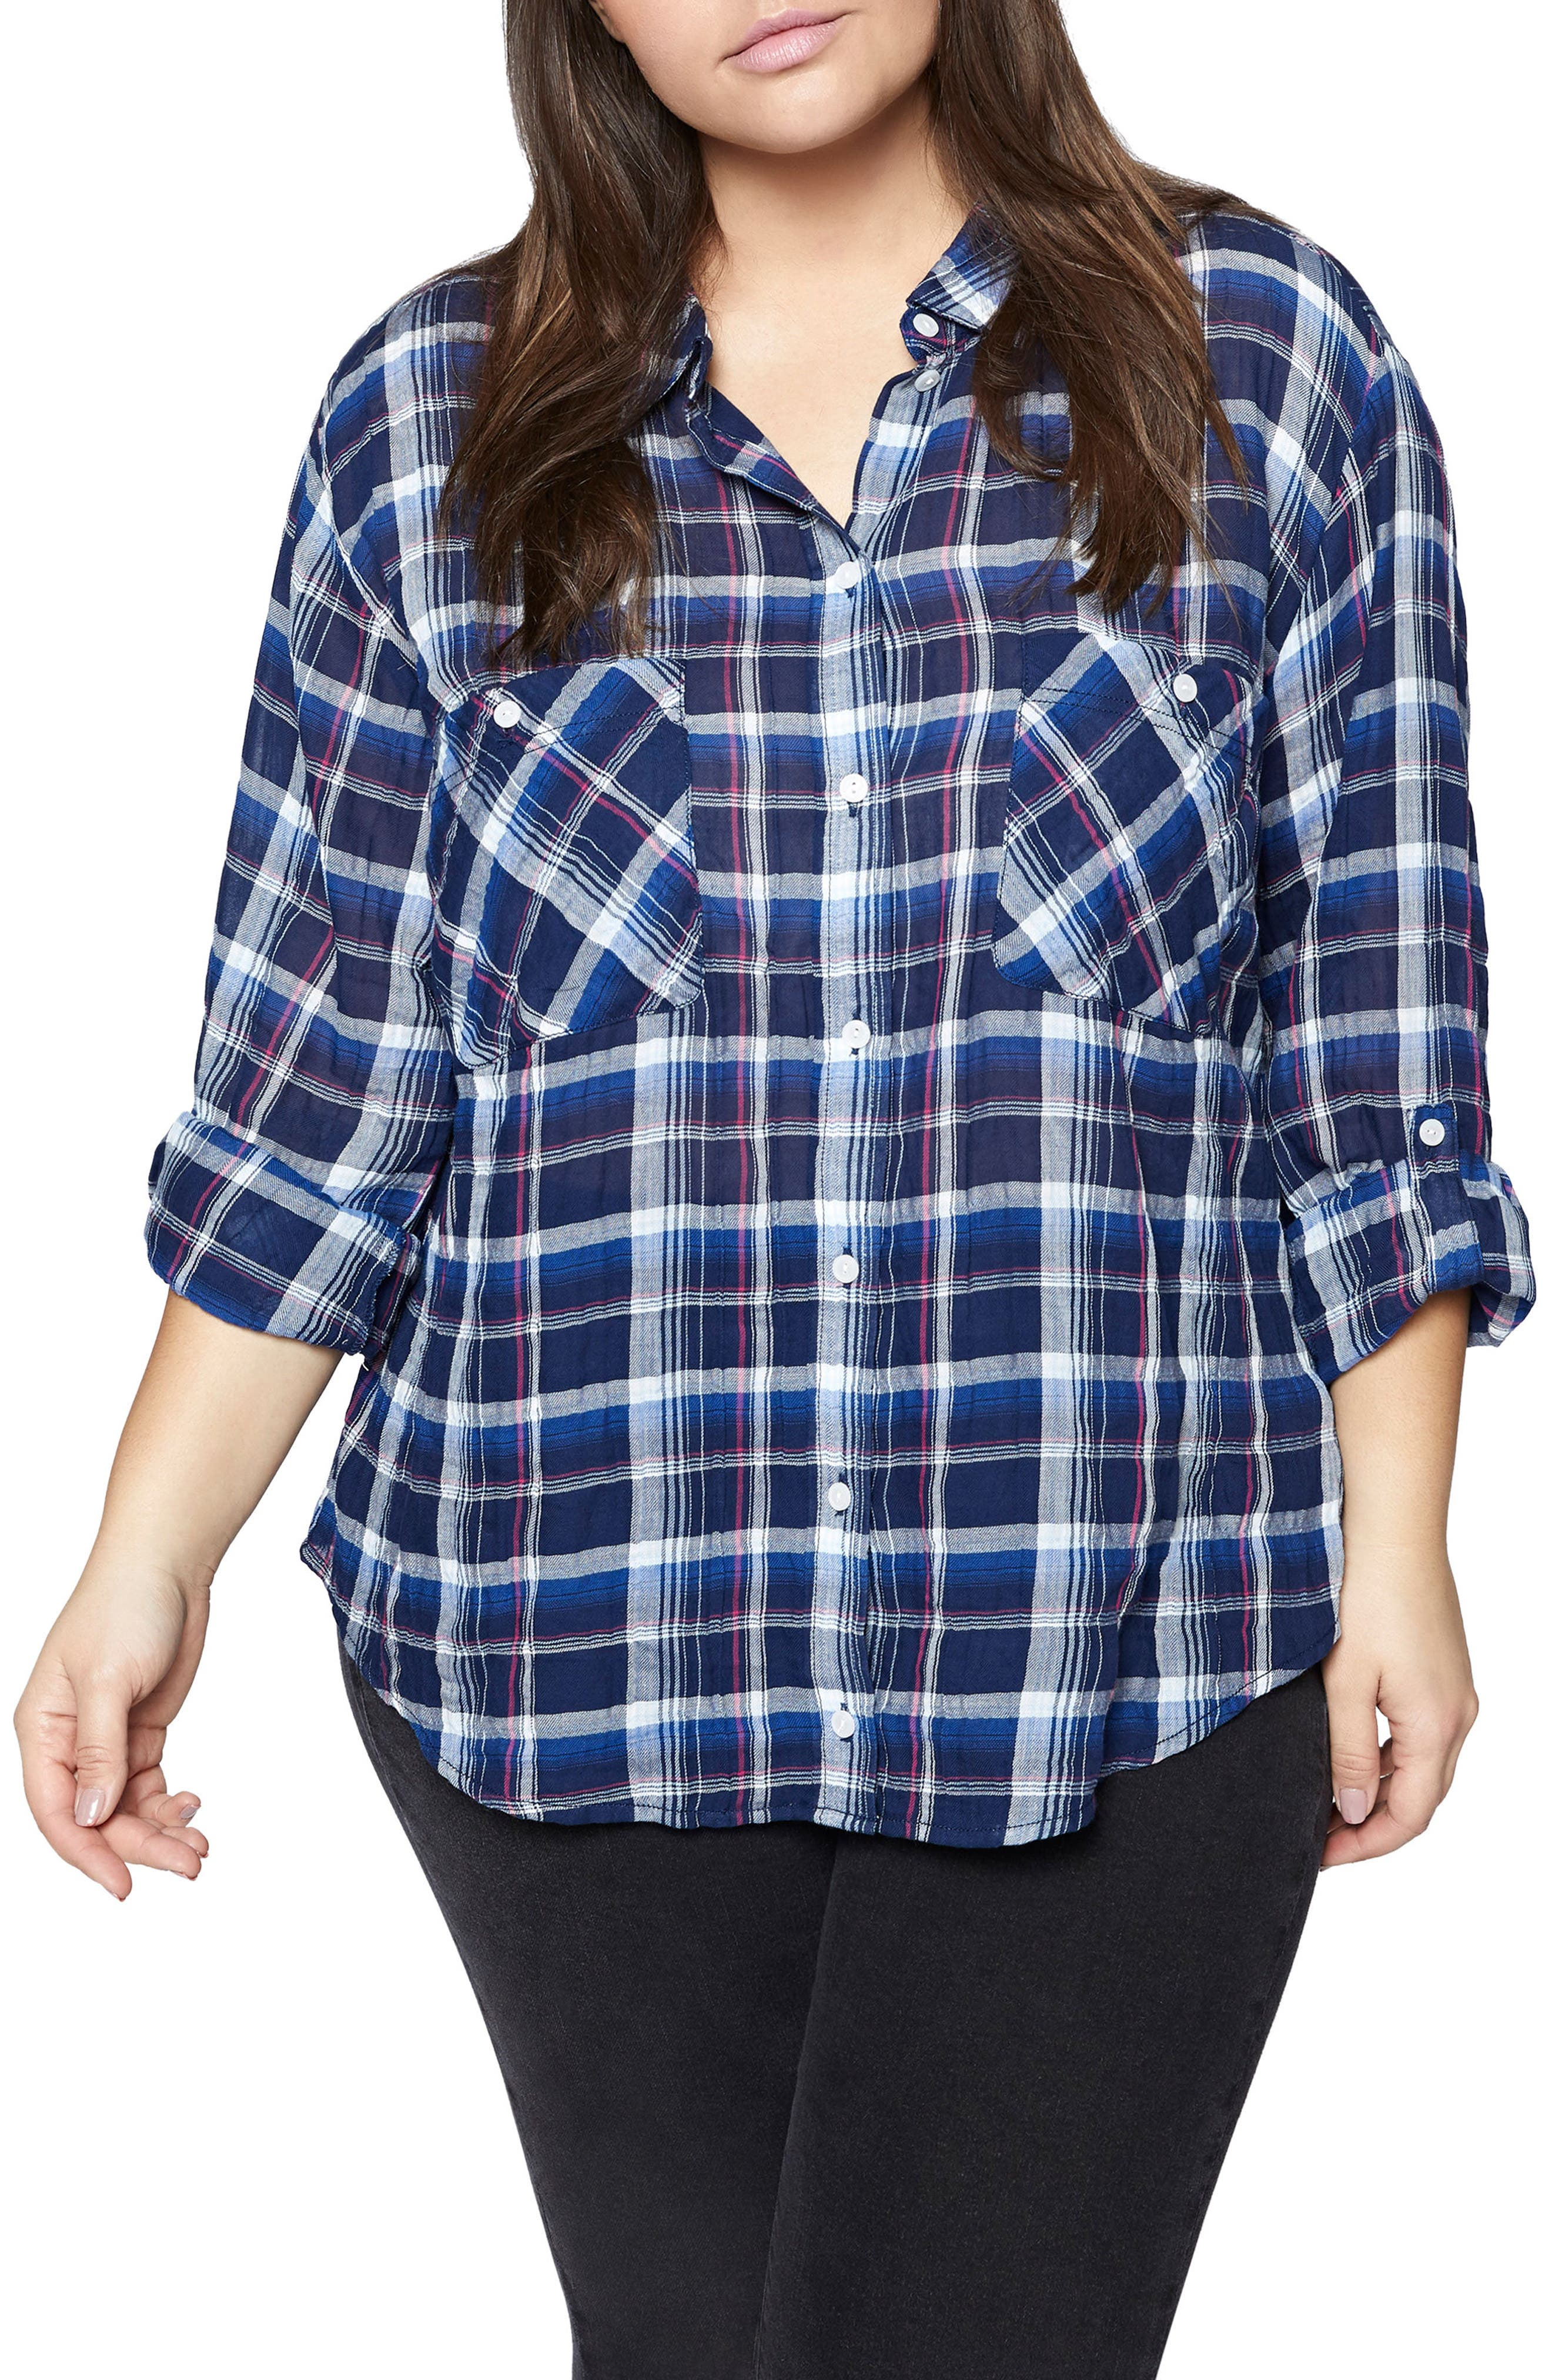 Steady Boyfriend Plaid Shirt,                         Main,                         color, 491